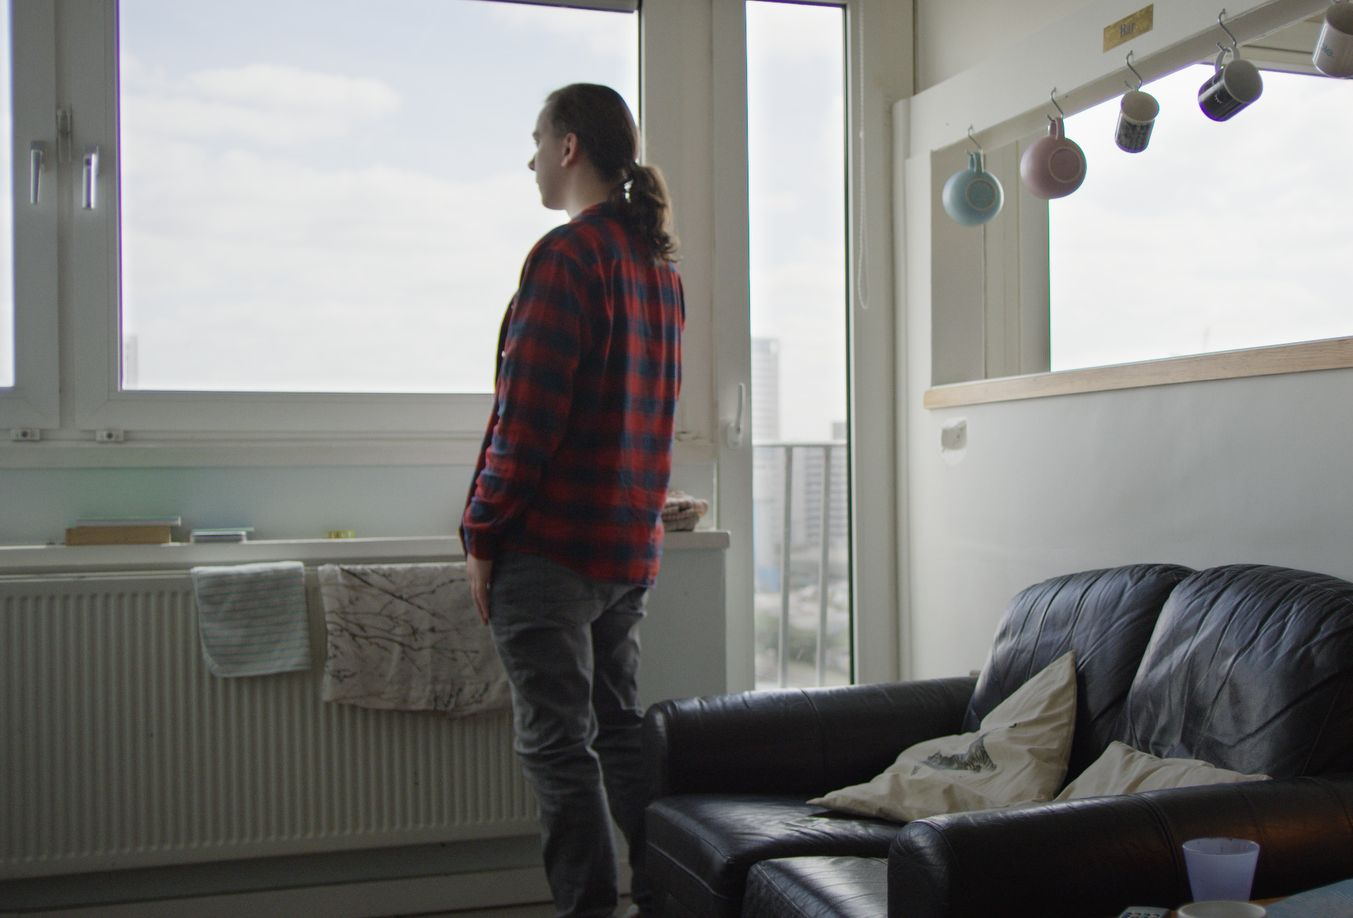 New Crisis Film Imagines Waking in a World Without Homelessness